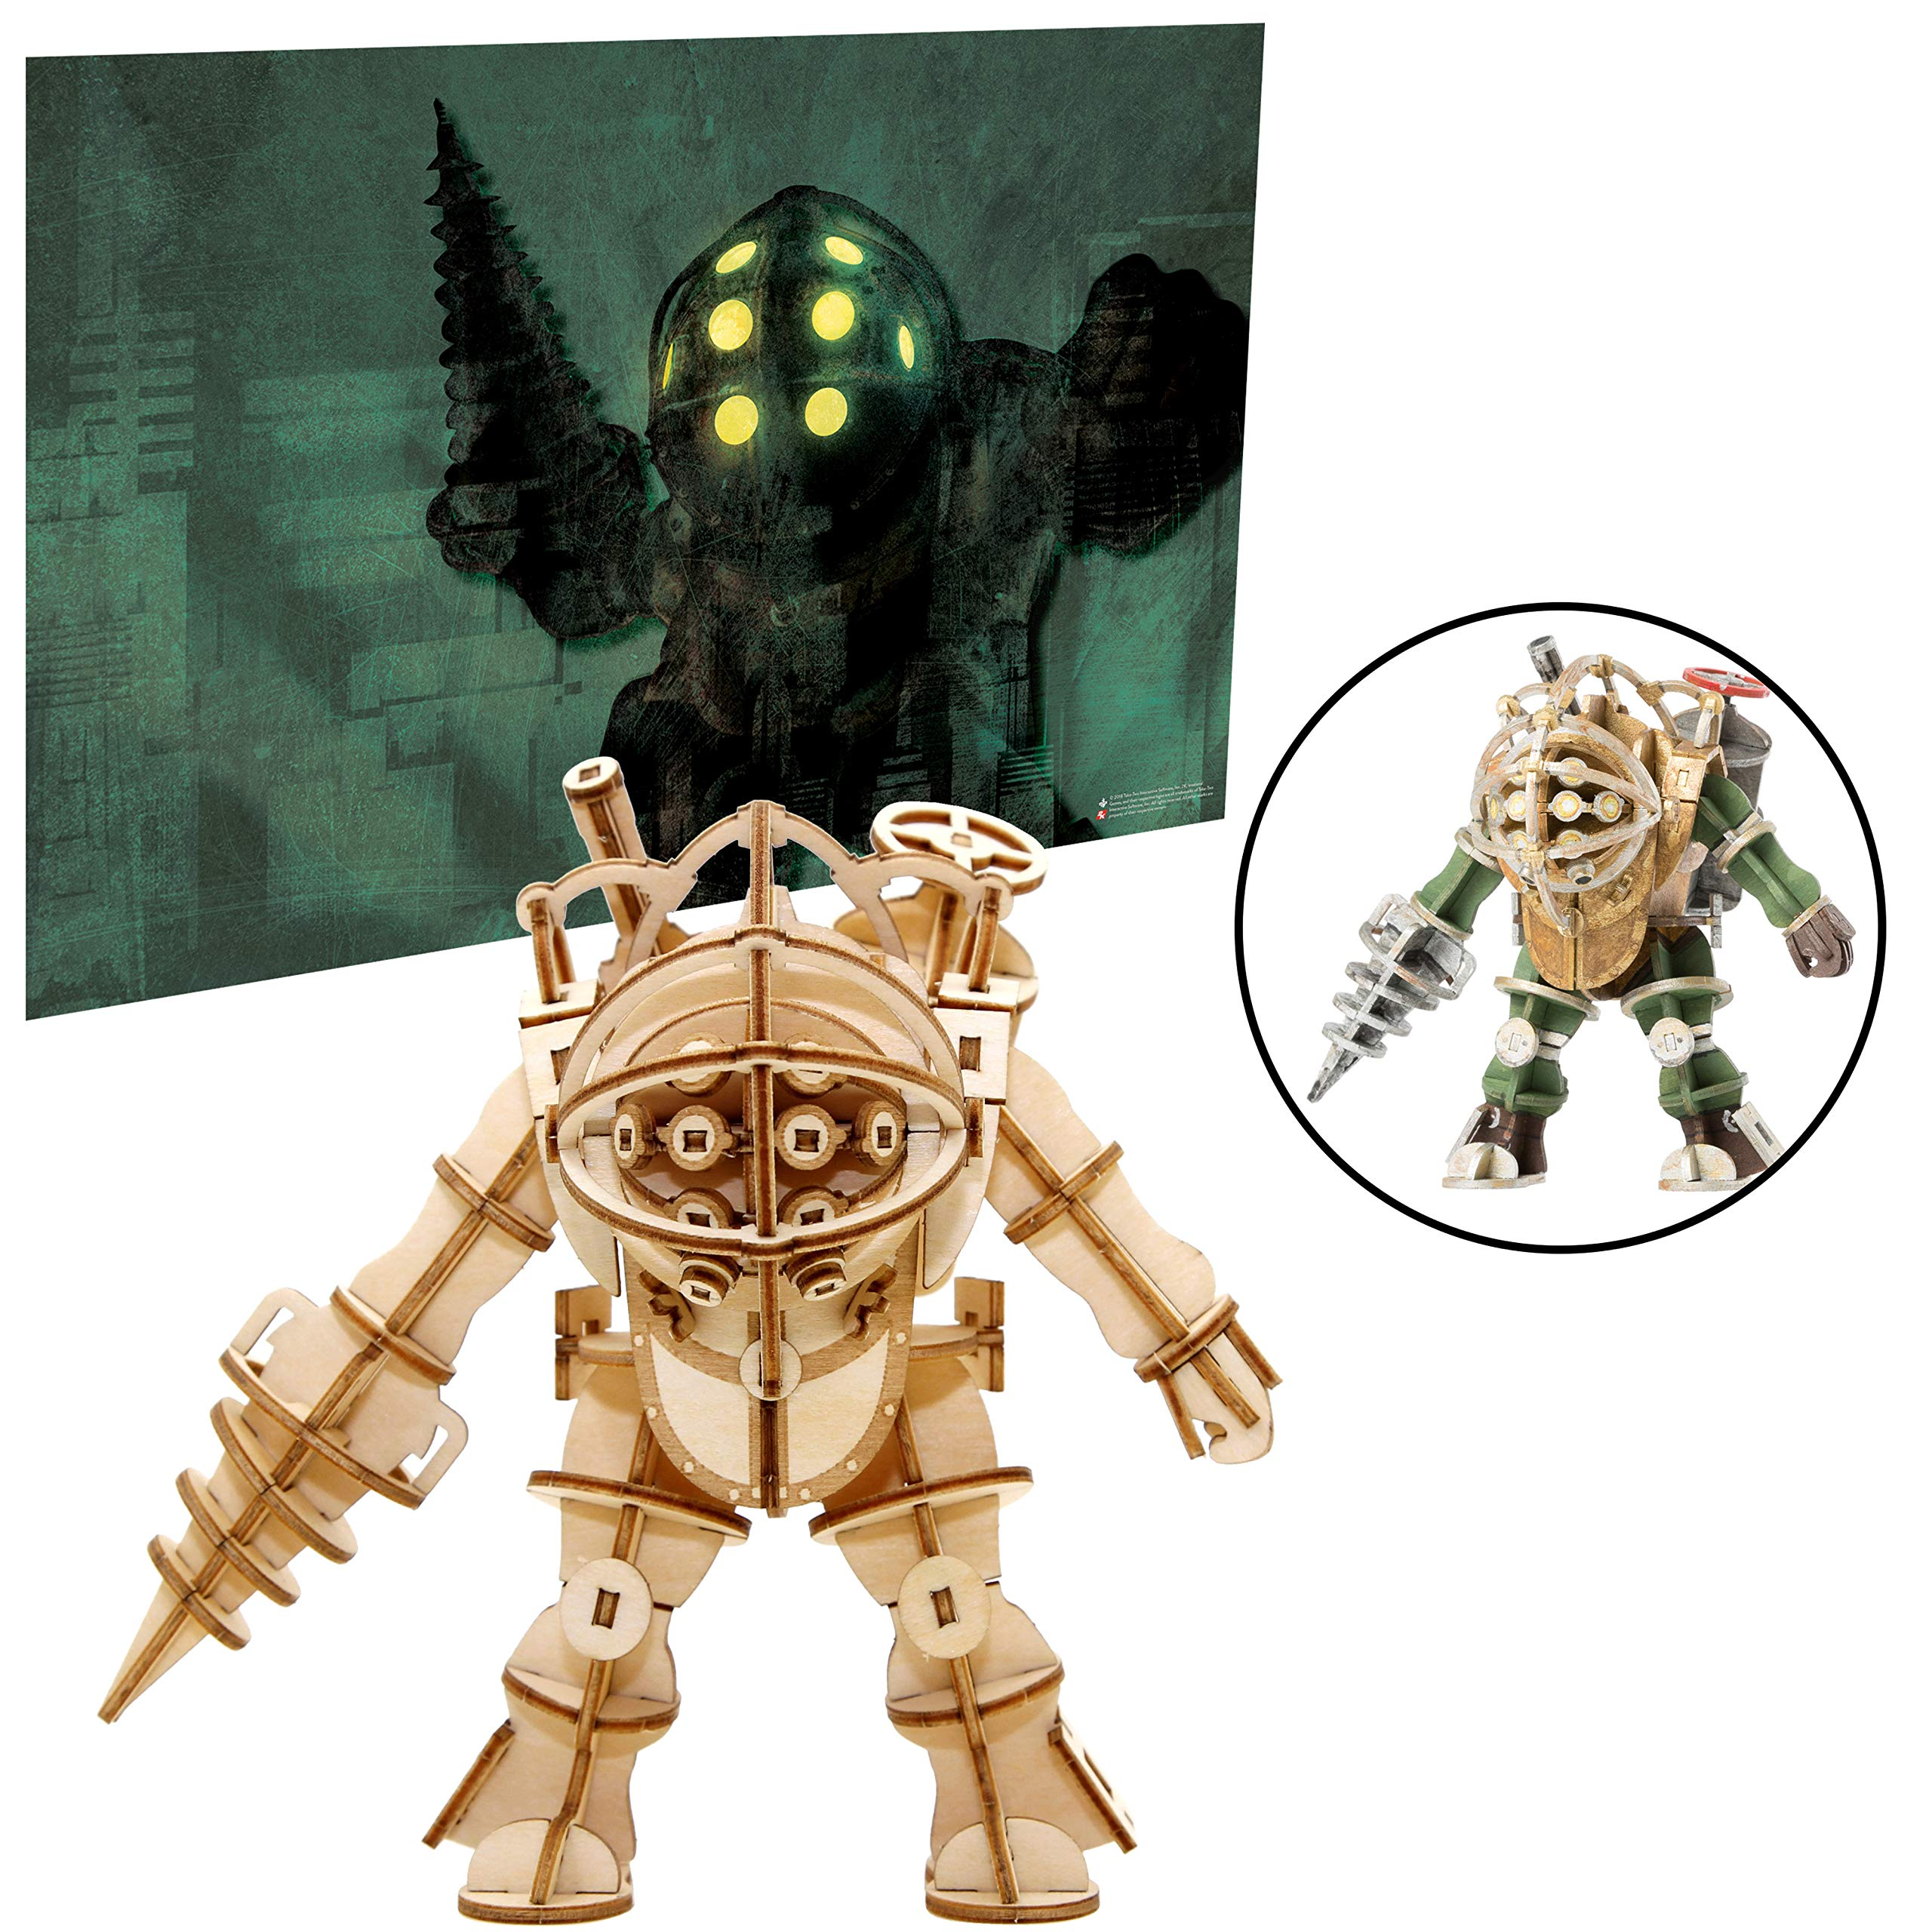 """Bioshock Big Daddy Poster and 3D Wood Model Figure Kit - Build, Paint and Collect Your Own Wooden Toy Model - Great for Teens and Adults,17+ - 5"""""""